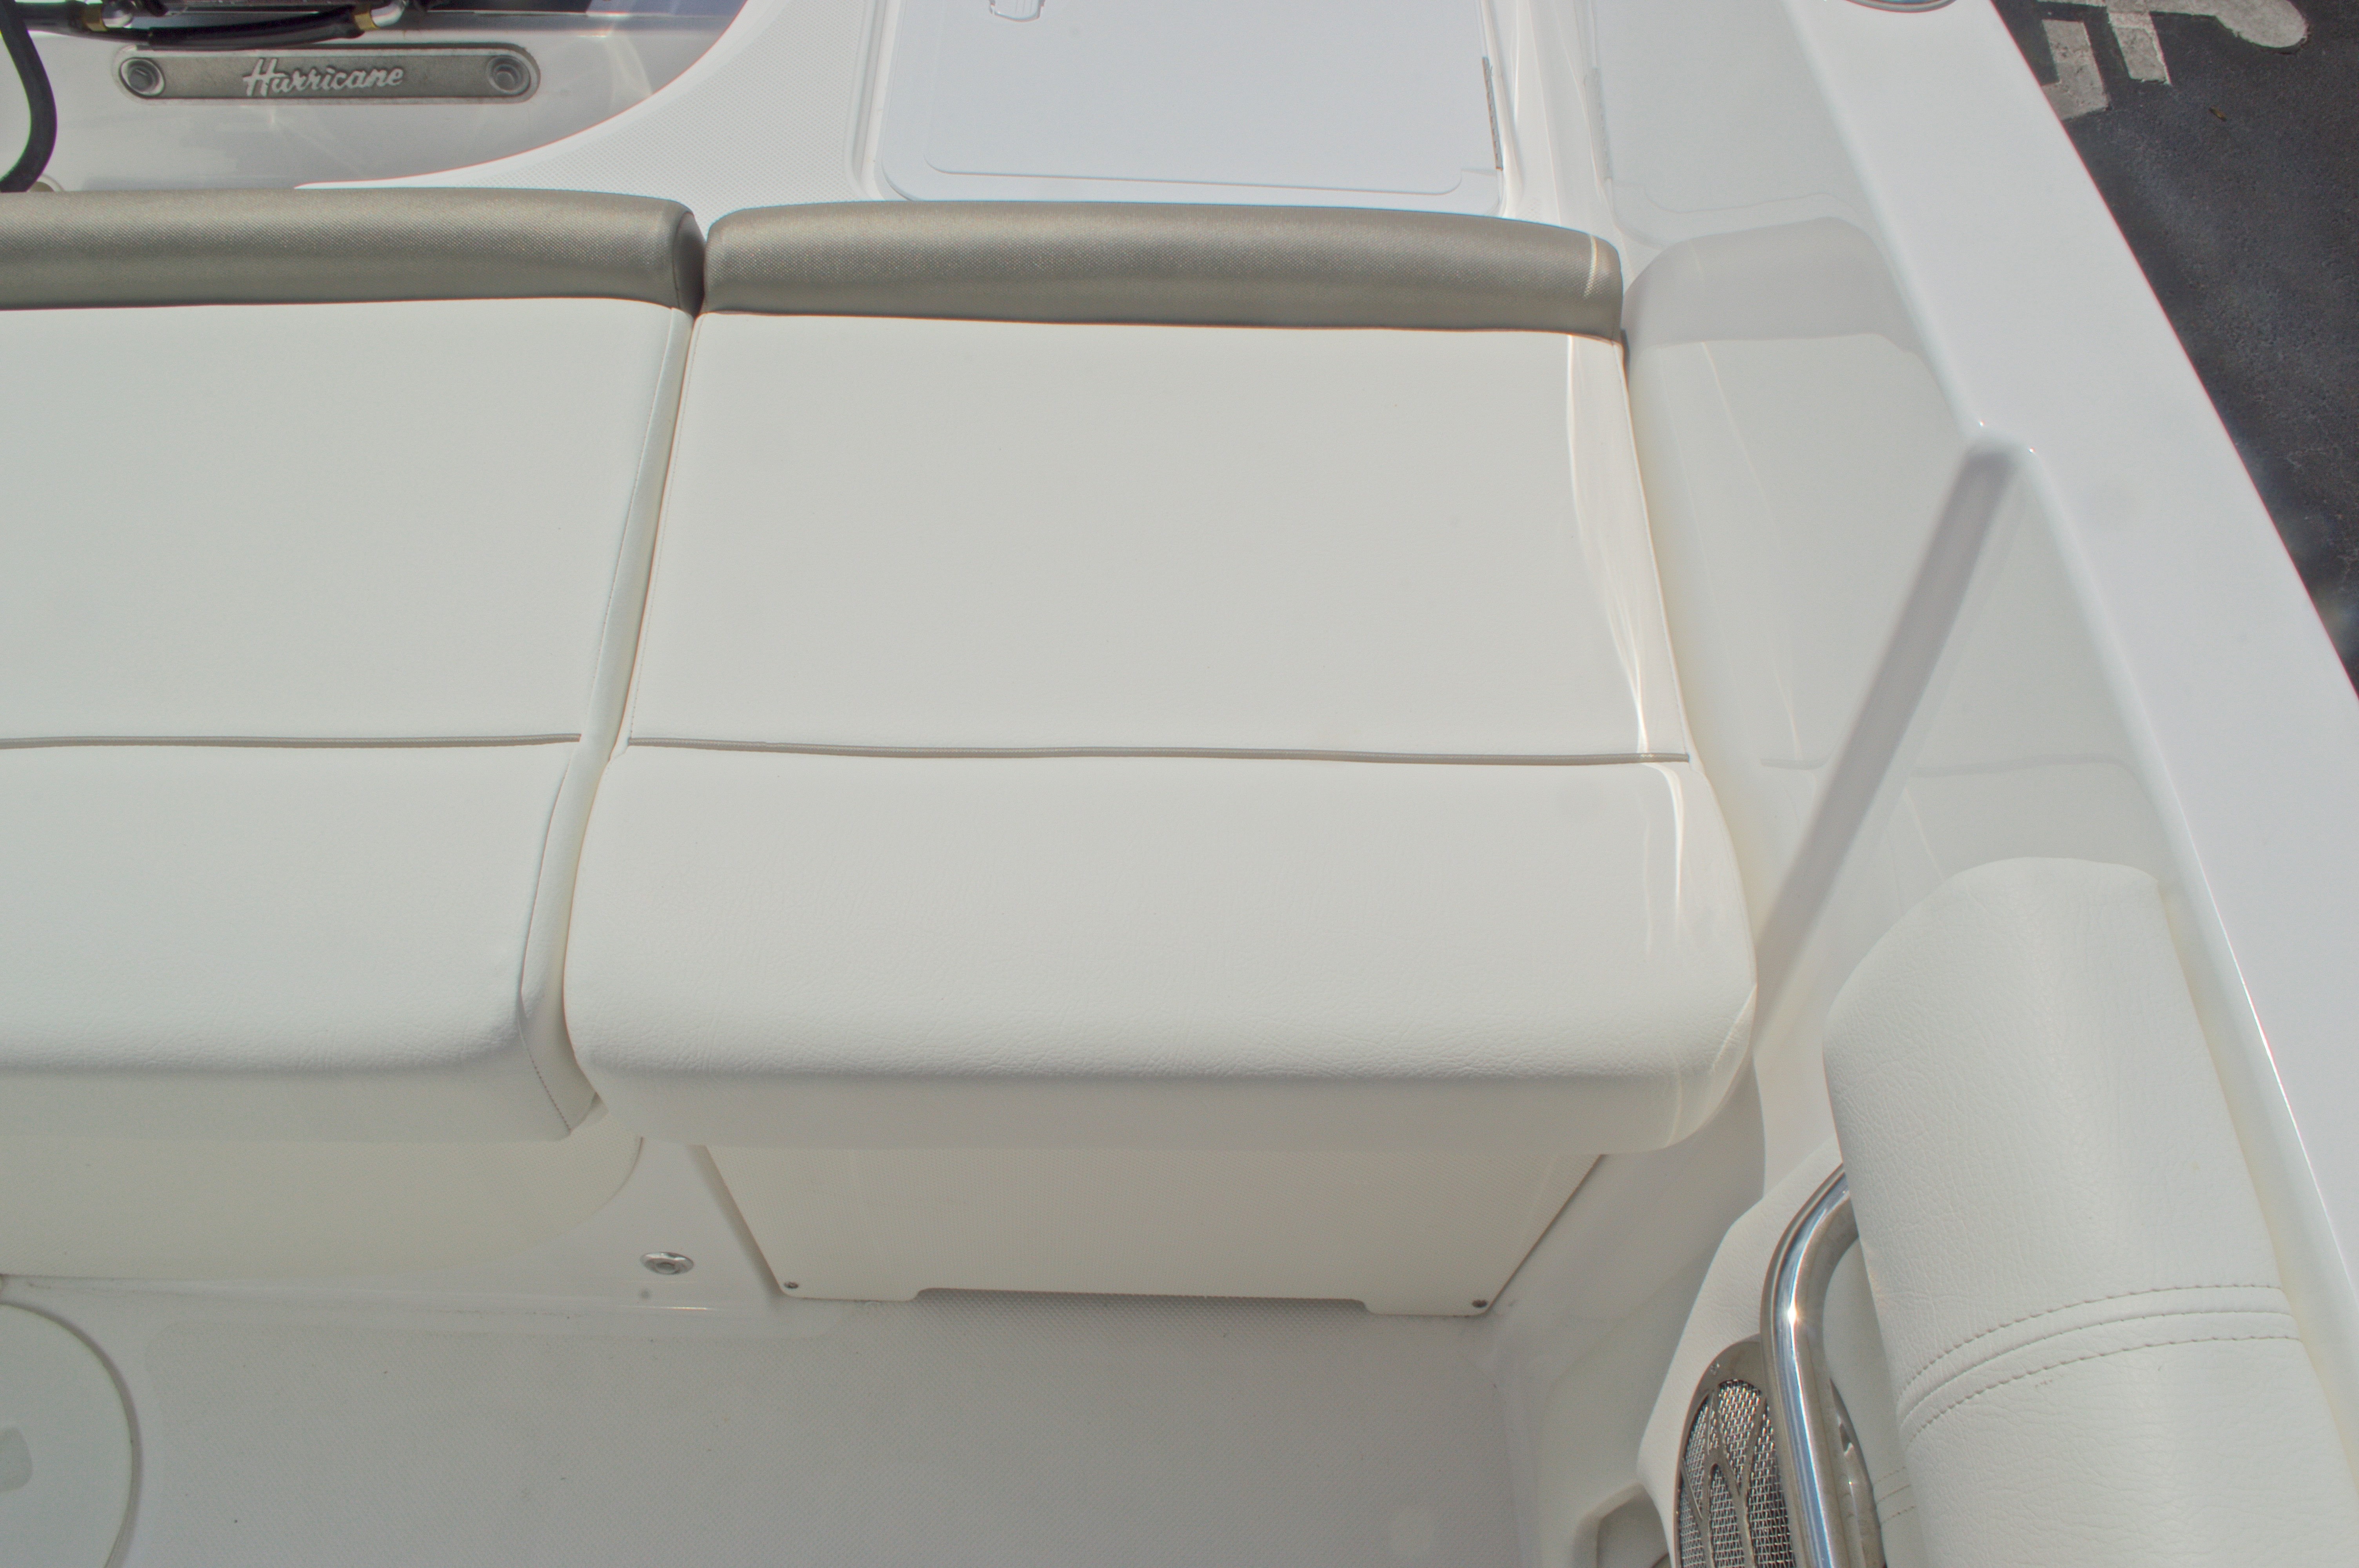 Thumbnail 20 for New 2016 Hurricane CC19 Center Console boat for sale in West Palm Beach, FL